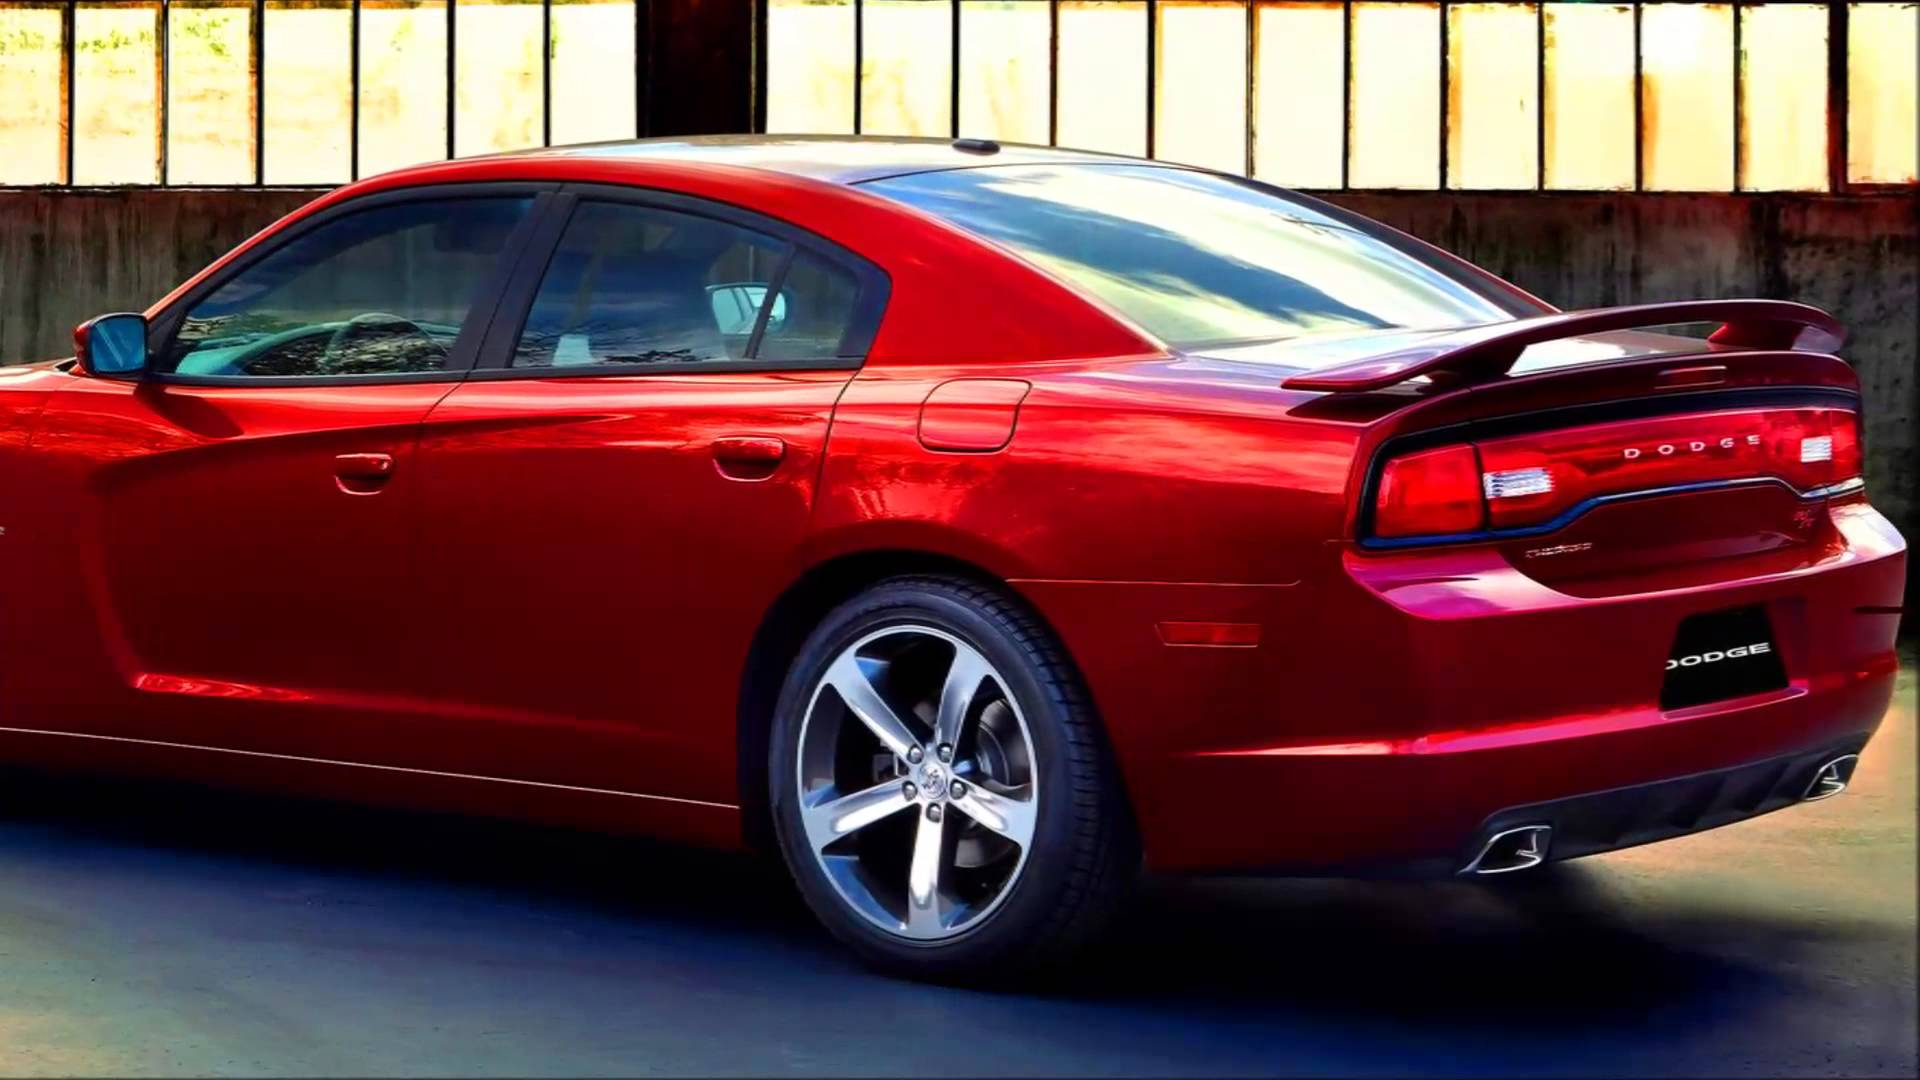 2019 Dodge Charger 100th Anniversary Edition photo - 2